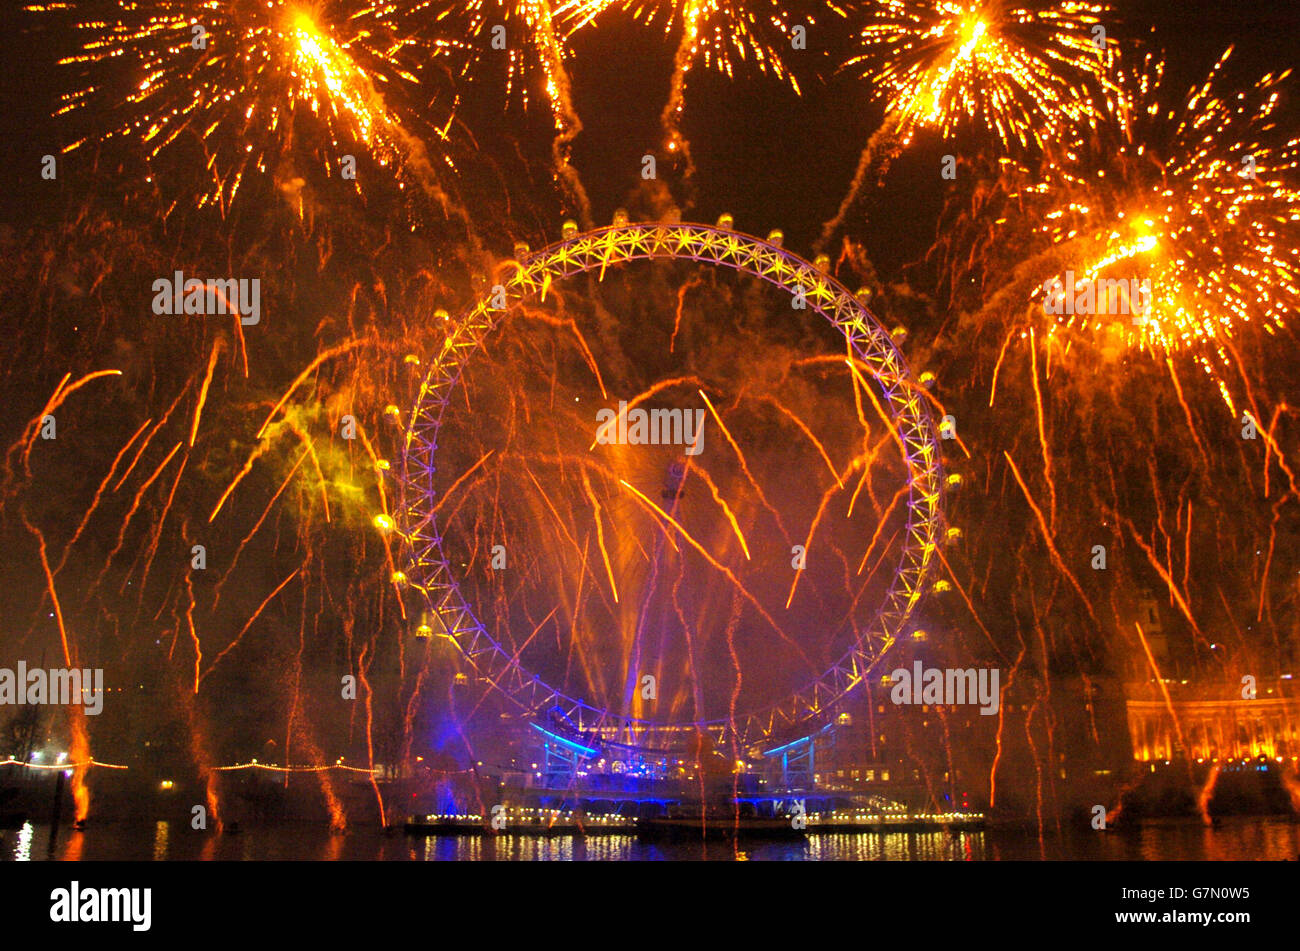 Customs and Traditions - New Year Celebrations - London Stock Photo